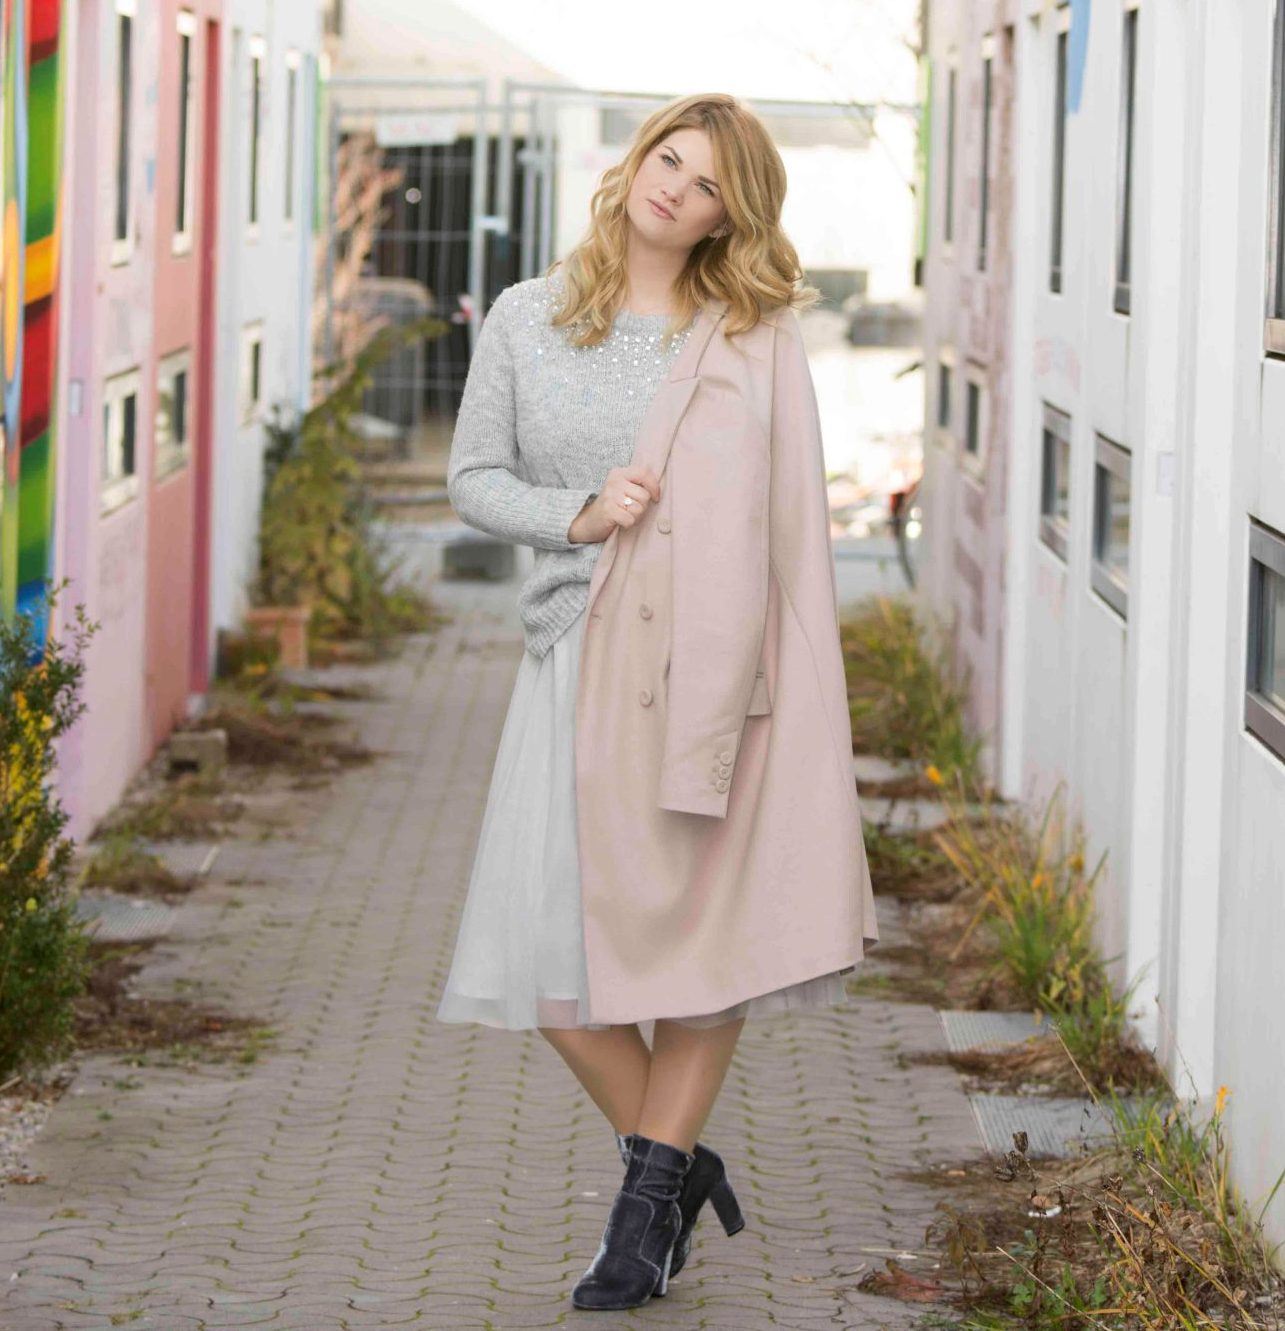 Olympisches Dorf, Nikon, Zara, Pastell, Pastellrosa, Rosa, L'Oréal, Inoa, Perlen, Perlenbrosche, Tiffany, Return to Tiffany, Pineapples and Pumps, Fashionblog, Modeblog, Modeblogger, Fashionblogger, Blogger, Styleblogger, Beauyblogger, Muenchen, Blond, ghd, Mantel, Coat, Statement, Winter, Look, Lookbook, Schmuck, Accesoires, Brosche, Tuellrock, Tuell, Rock, Pullover, C&A, Samt, Samtboots, Boots, Stiefelette